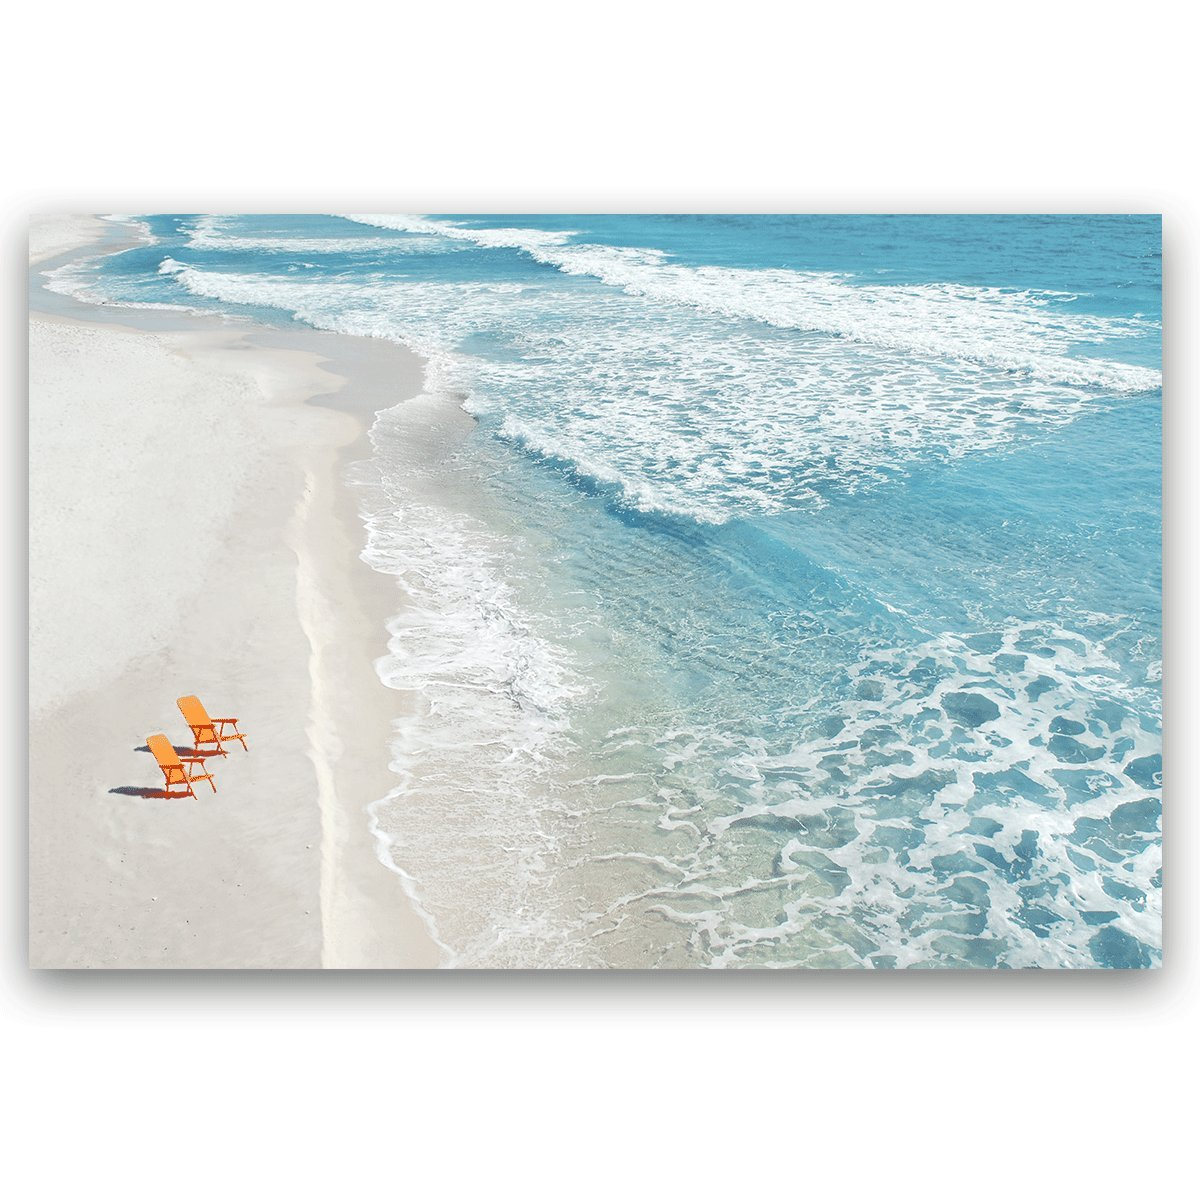 Studio 500 Museum Grade Canvas Art - Hilton Head South Carolina, seen on Big Brother 20, in Color, 48'' x 36'' High Resolution Giclee Printing, from our Landscapes Collection, B2620-1